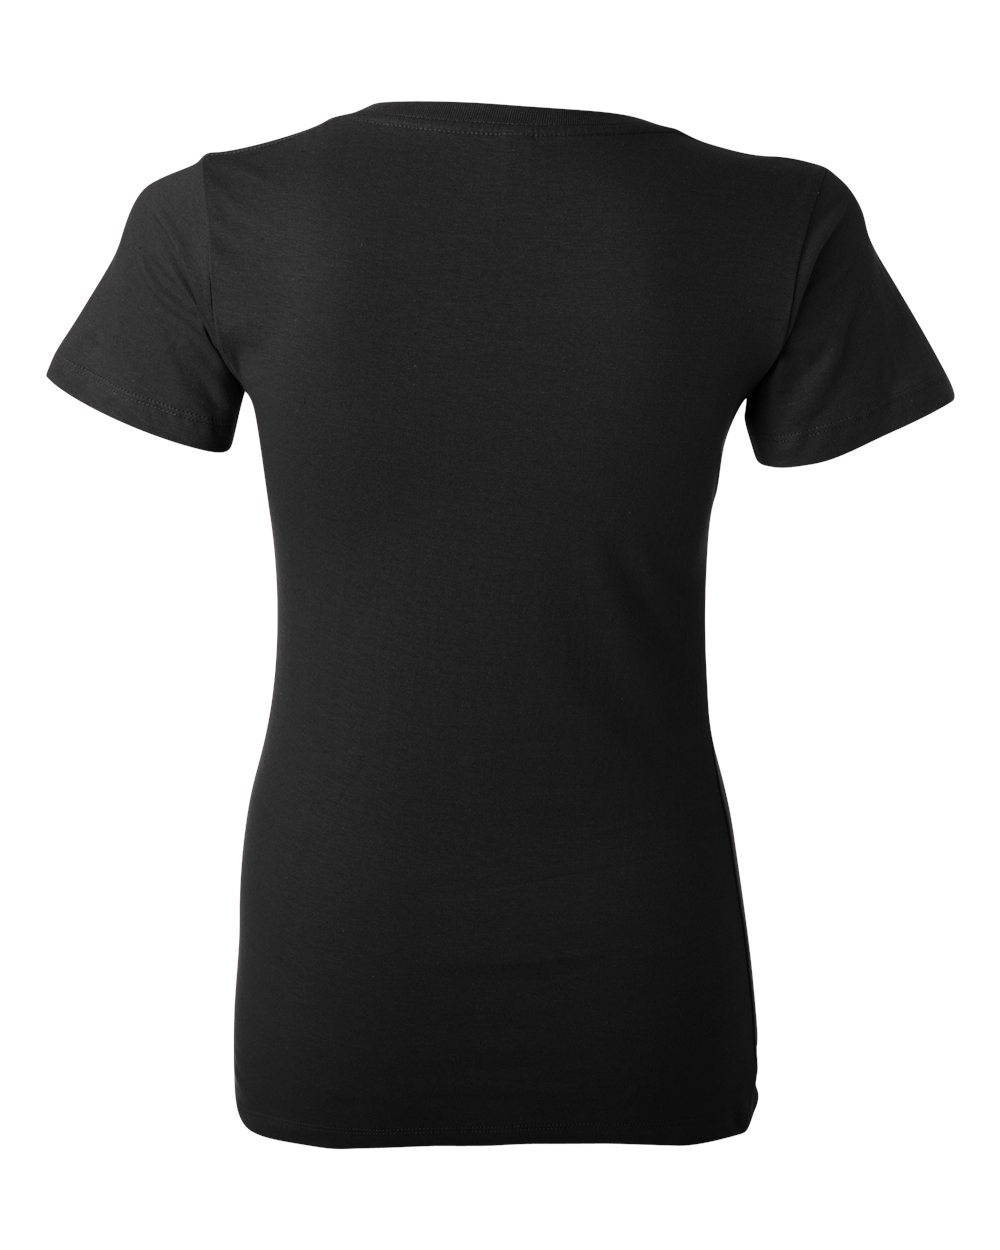 Bella-Canvas-Women-039-s-Jersey-Short-Sleeve-Deep-V-Neck-T-Shirt-B6035-S-2XL thumbnail 10